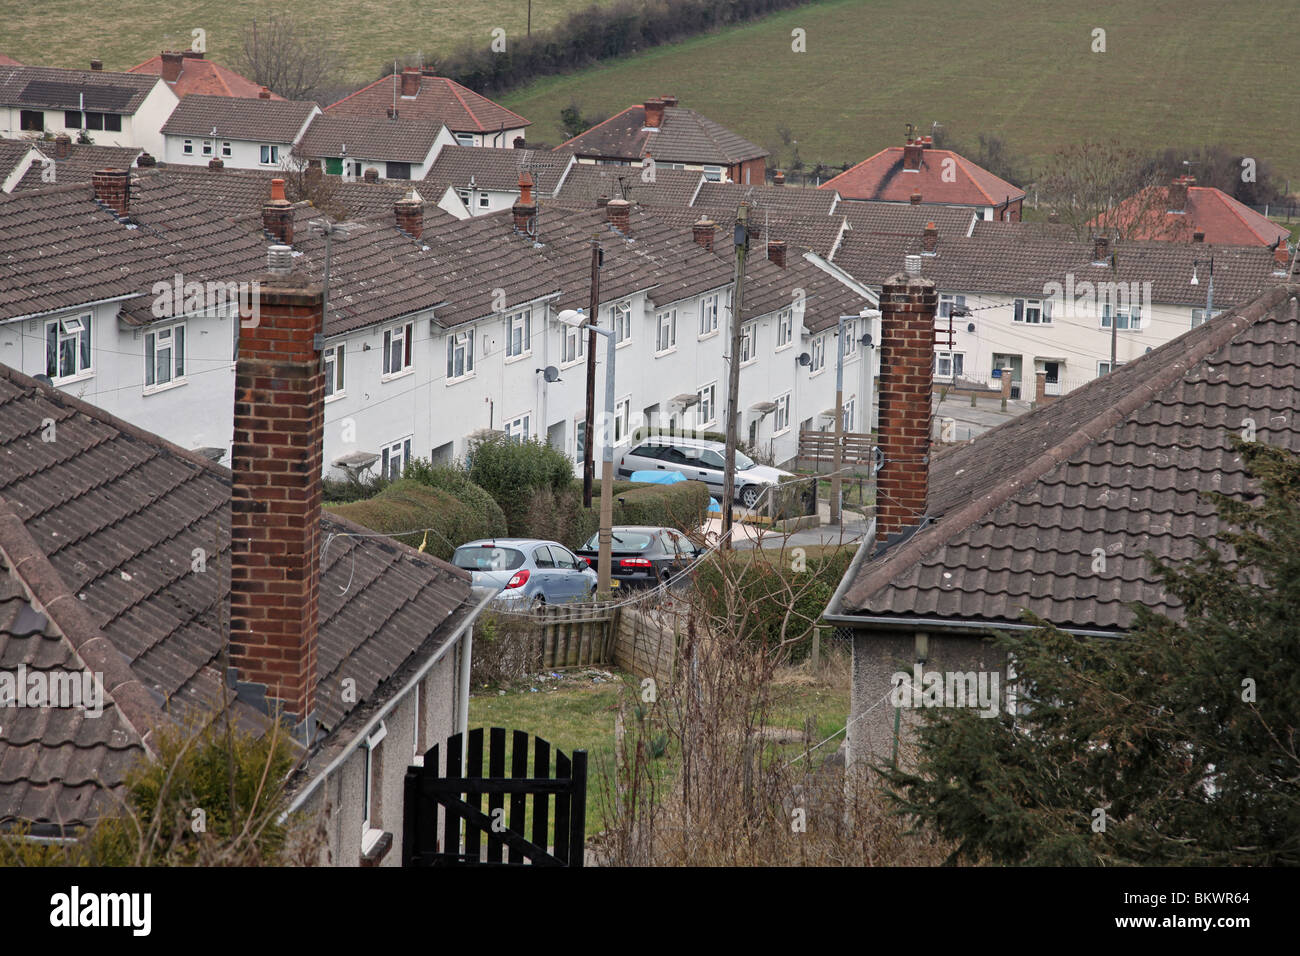 Council housing estate street in Holywell, Flintshire, North Wales - Stock Image